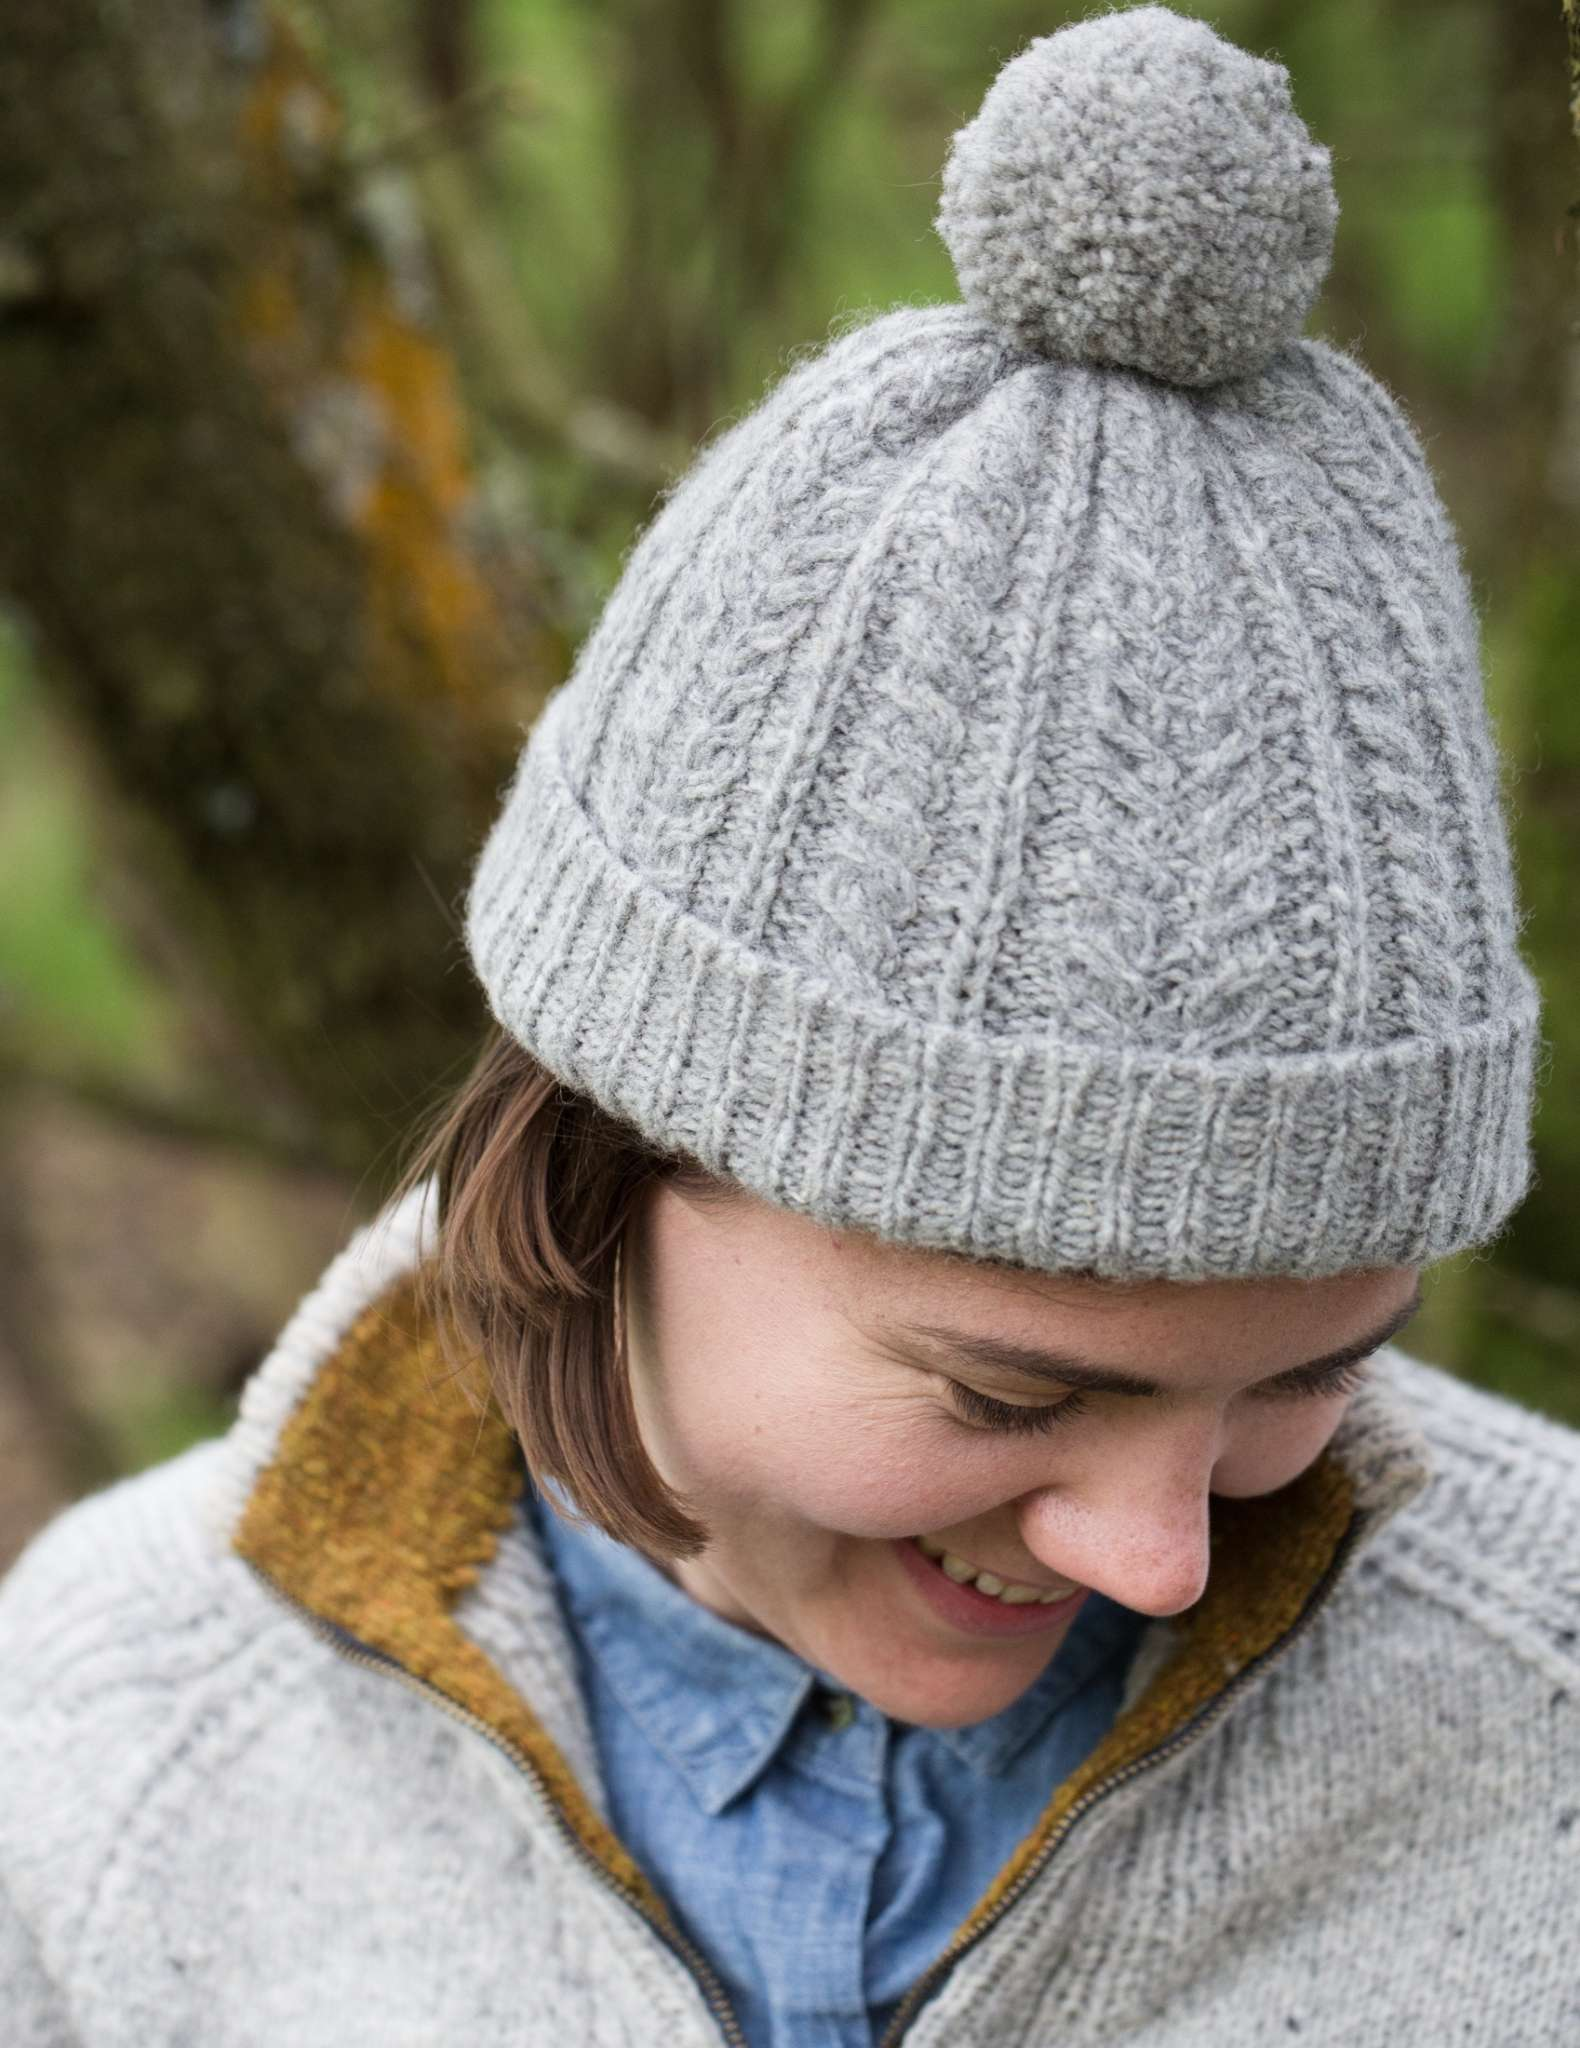 A white woman wearing a grey sweater and blue shirt looks down smiling, she wears a cabled grey hat with pom pom and a turned up ribbed brim.